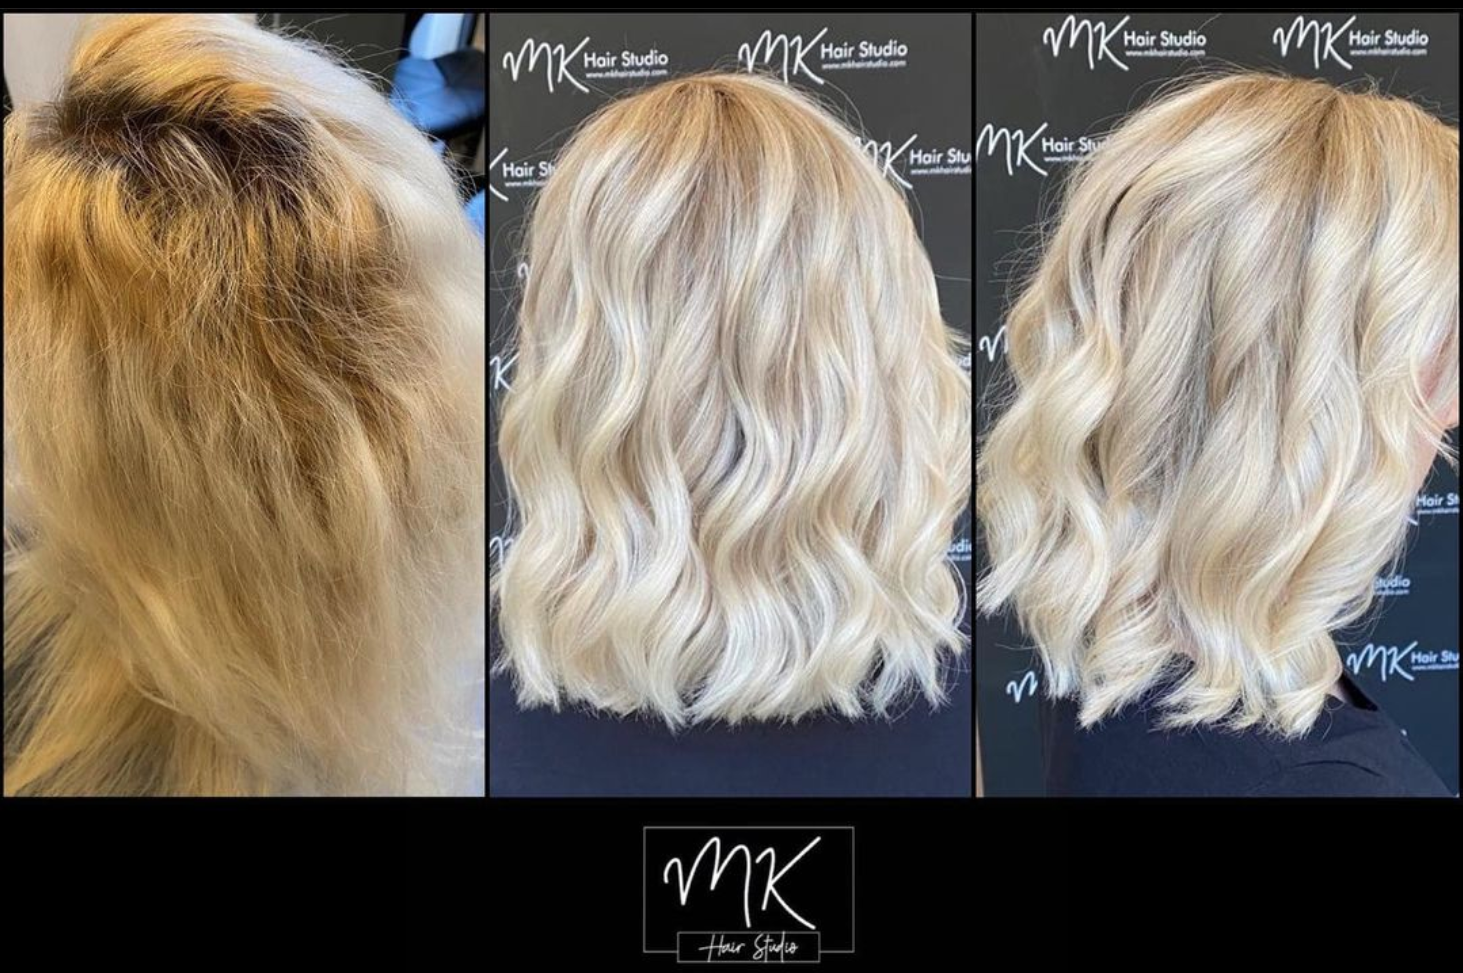 Before & after - Ice blonde ❄️love this transformation